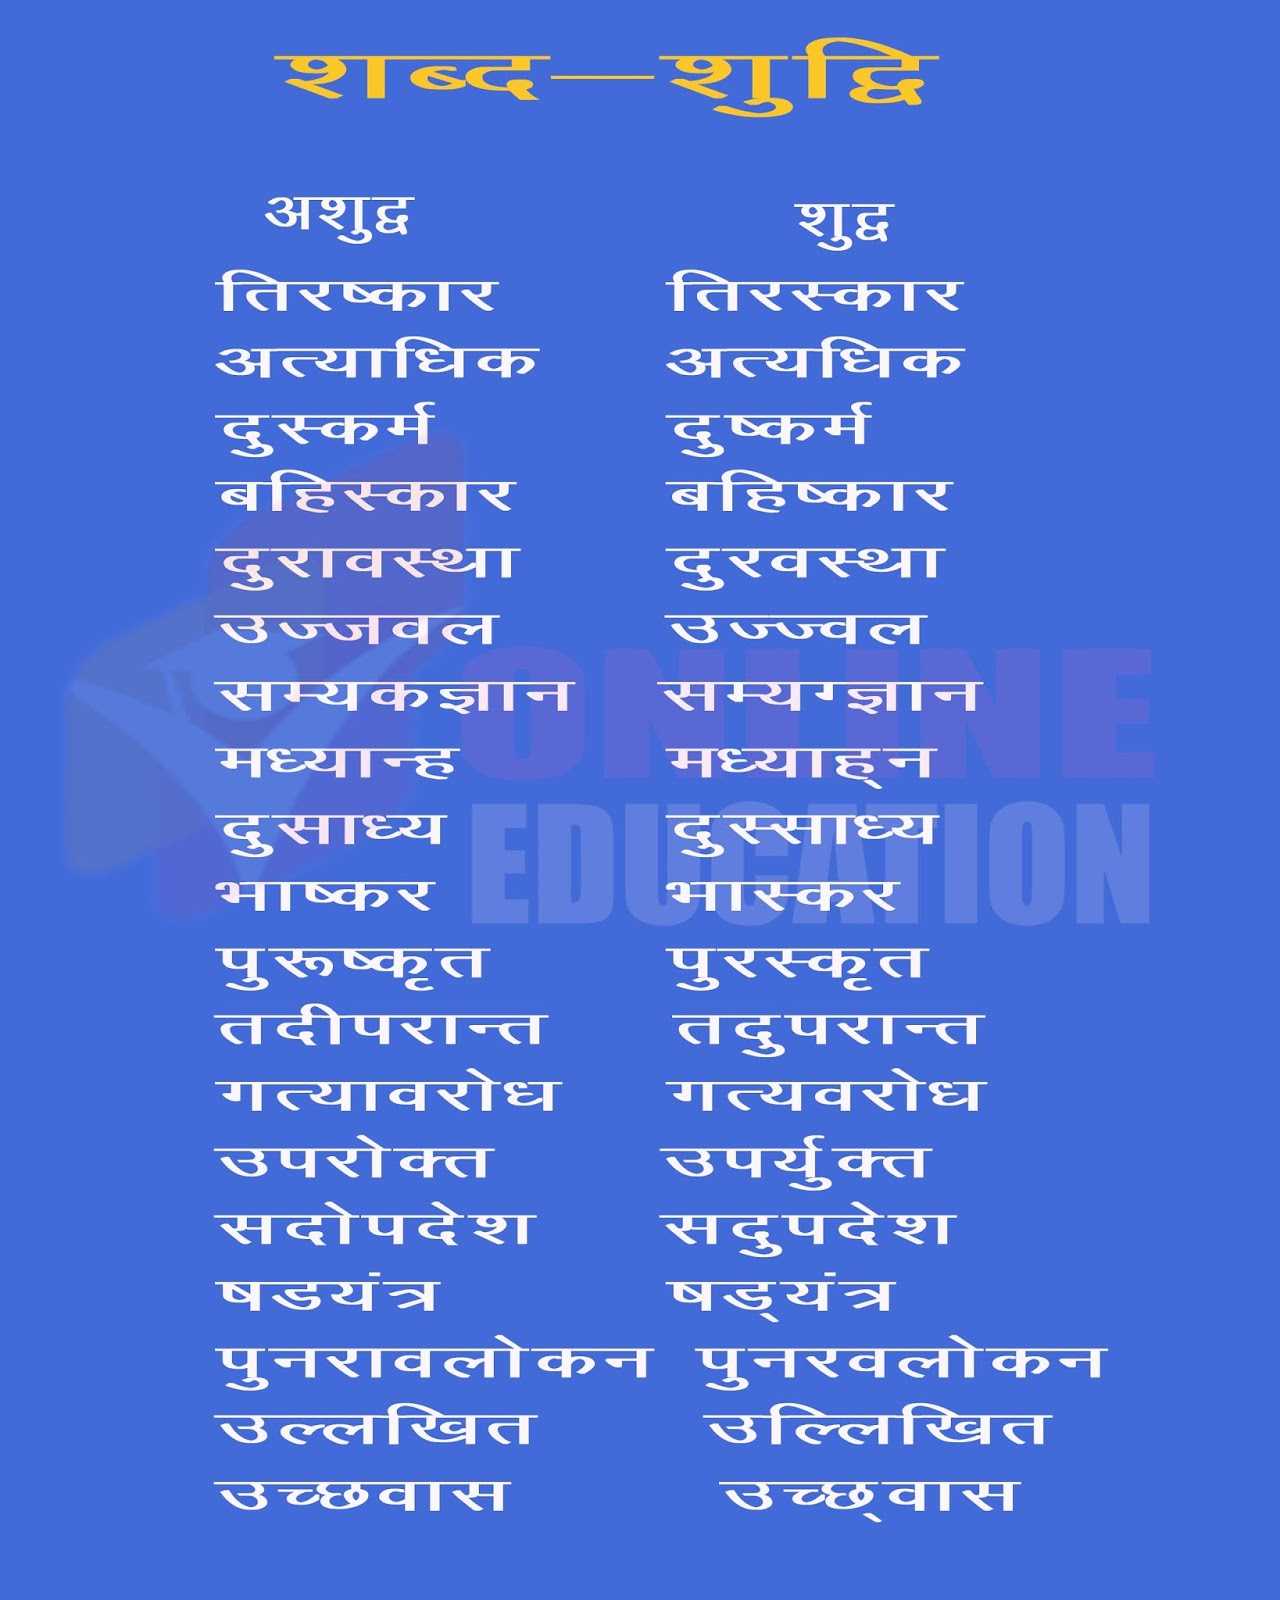 Hindi Grammer Notes